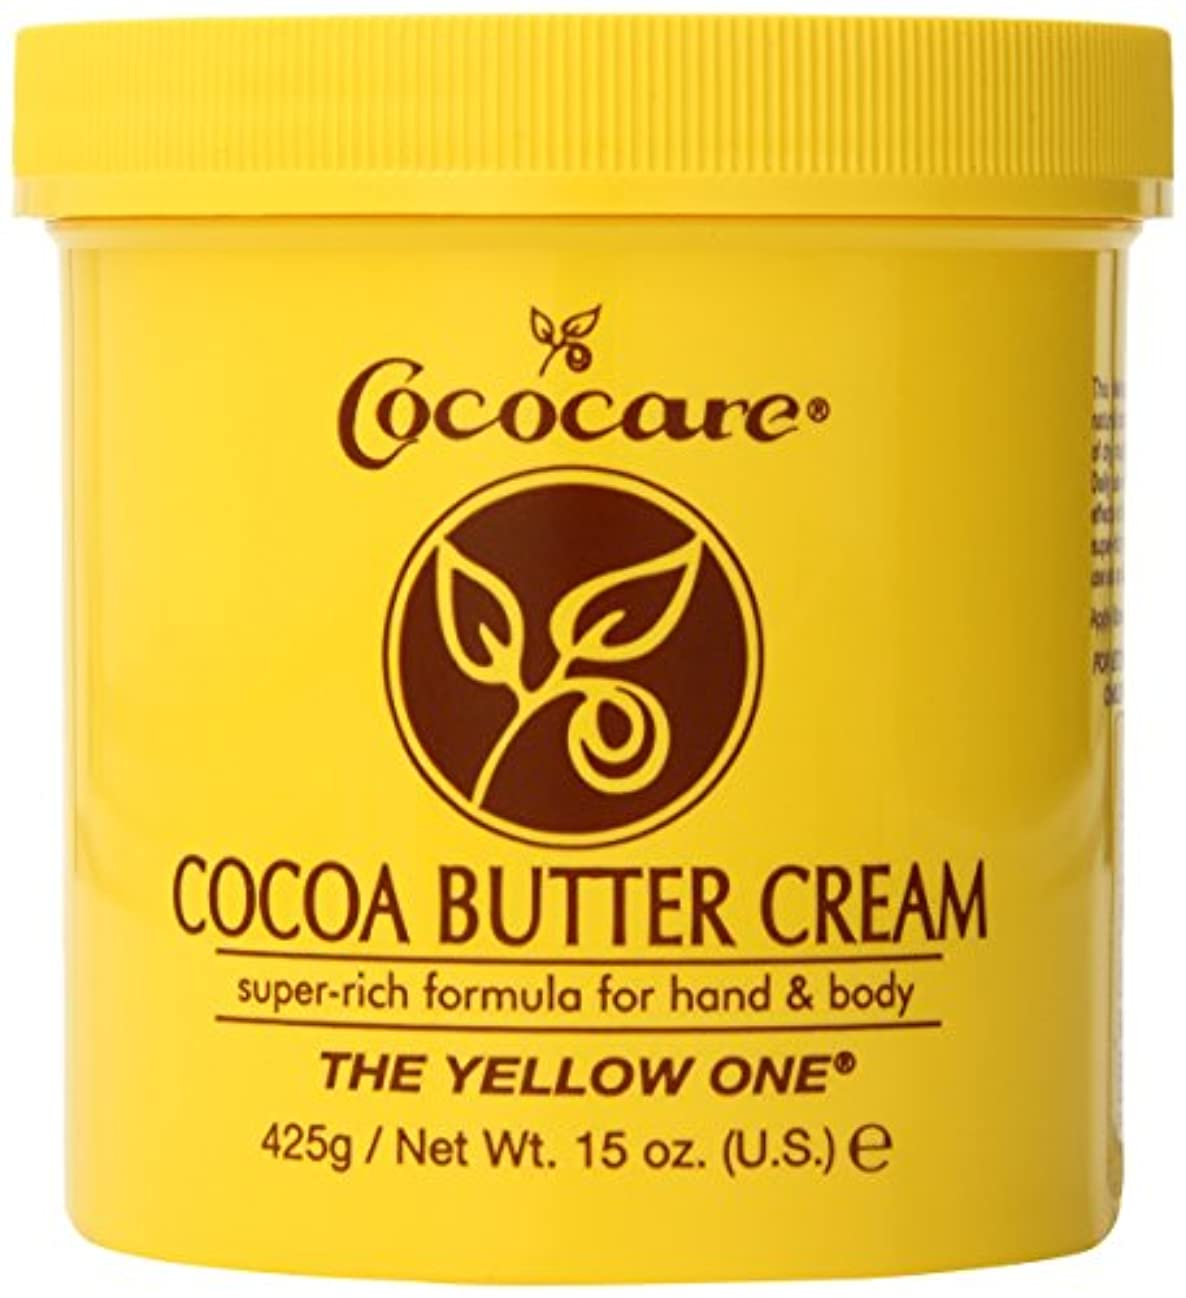 診断するビタミン謝るCococare, The Yellow One, Cocoa Butter Cream, 15 oz (425 g)